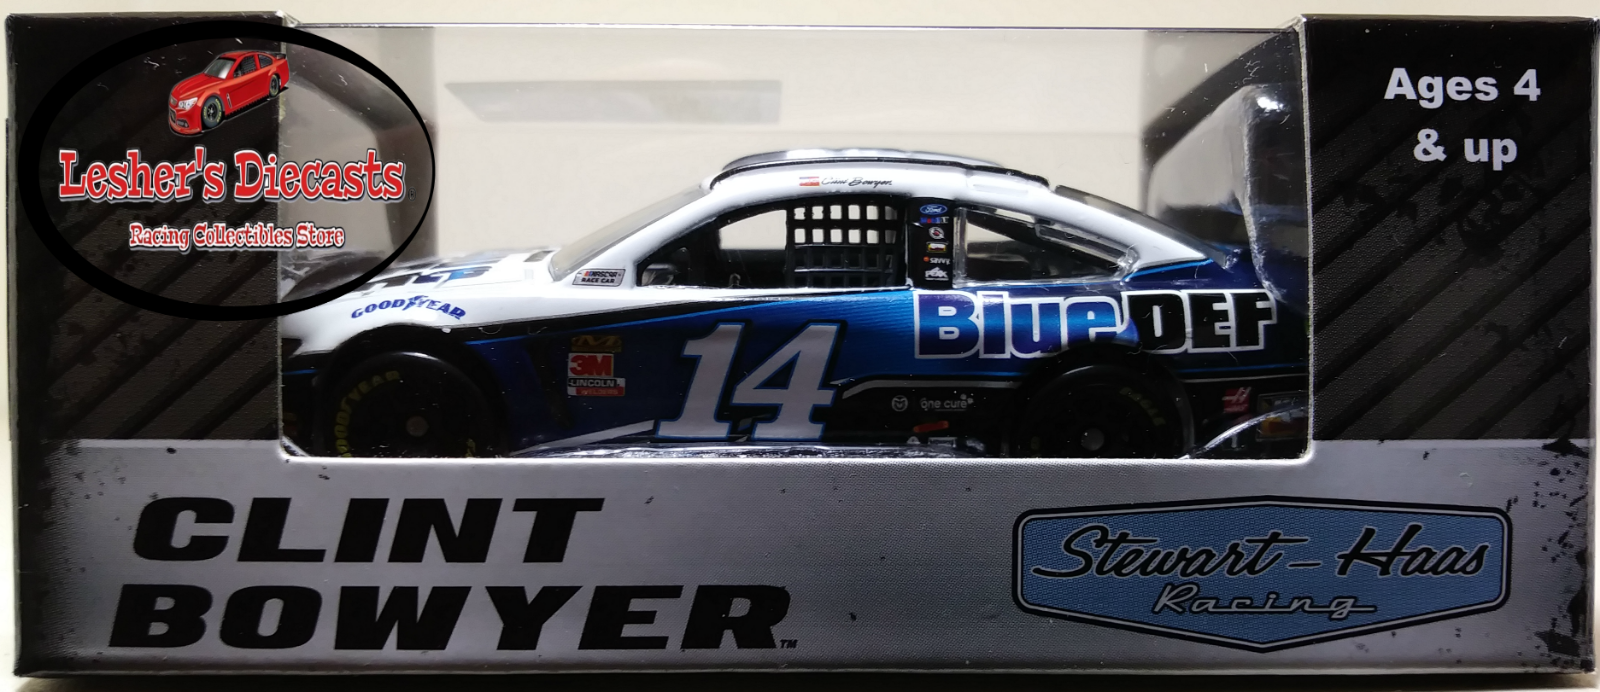 Clint Bowyer 2019 #14 Peak Blue Def Ford Mustang 1:64 ARC -